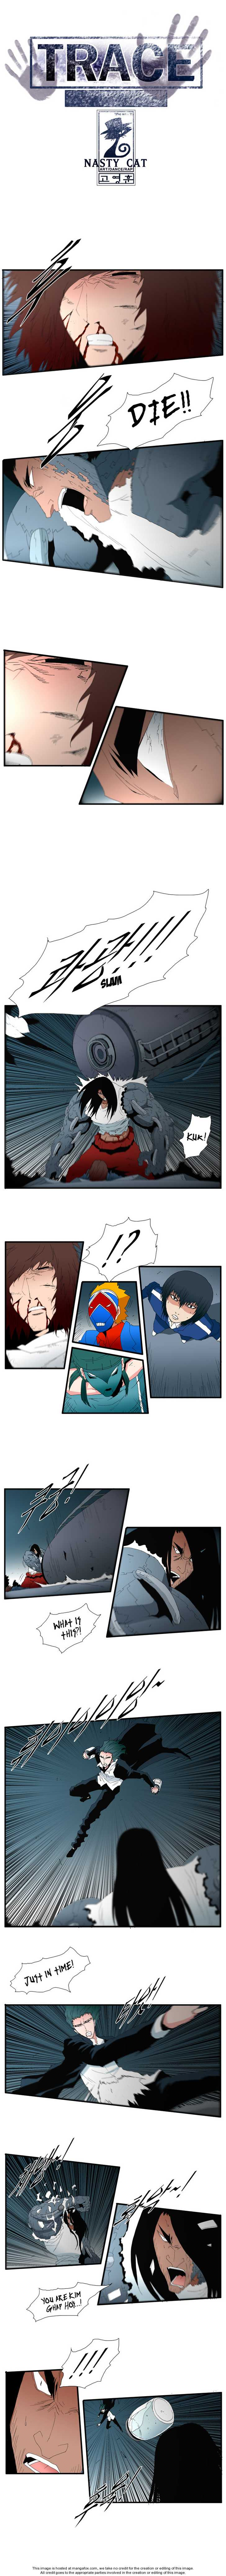 Trace 37 Page 1